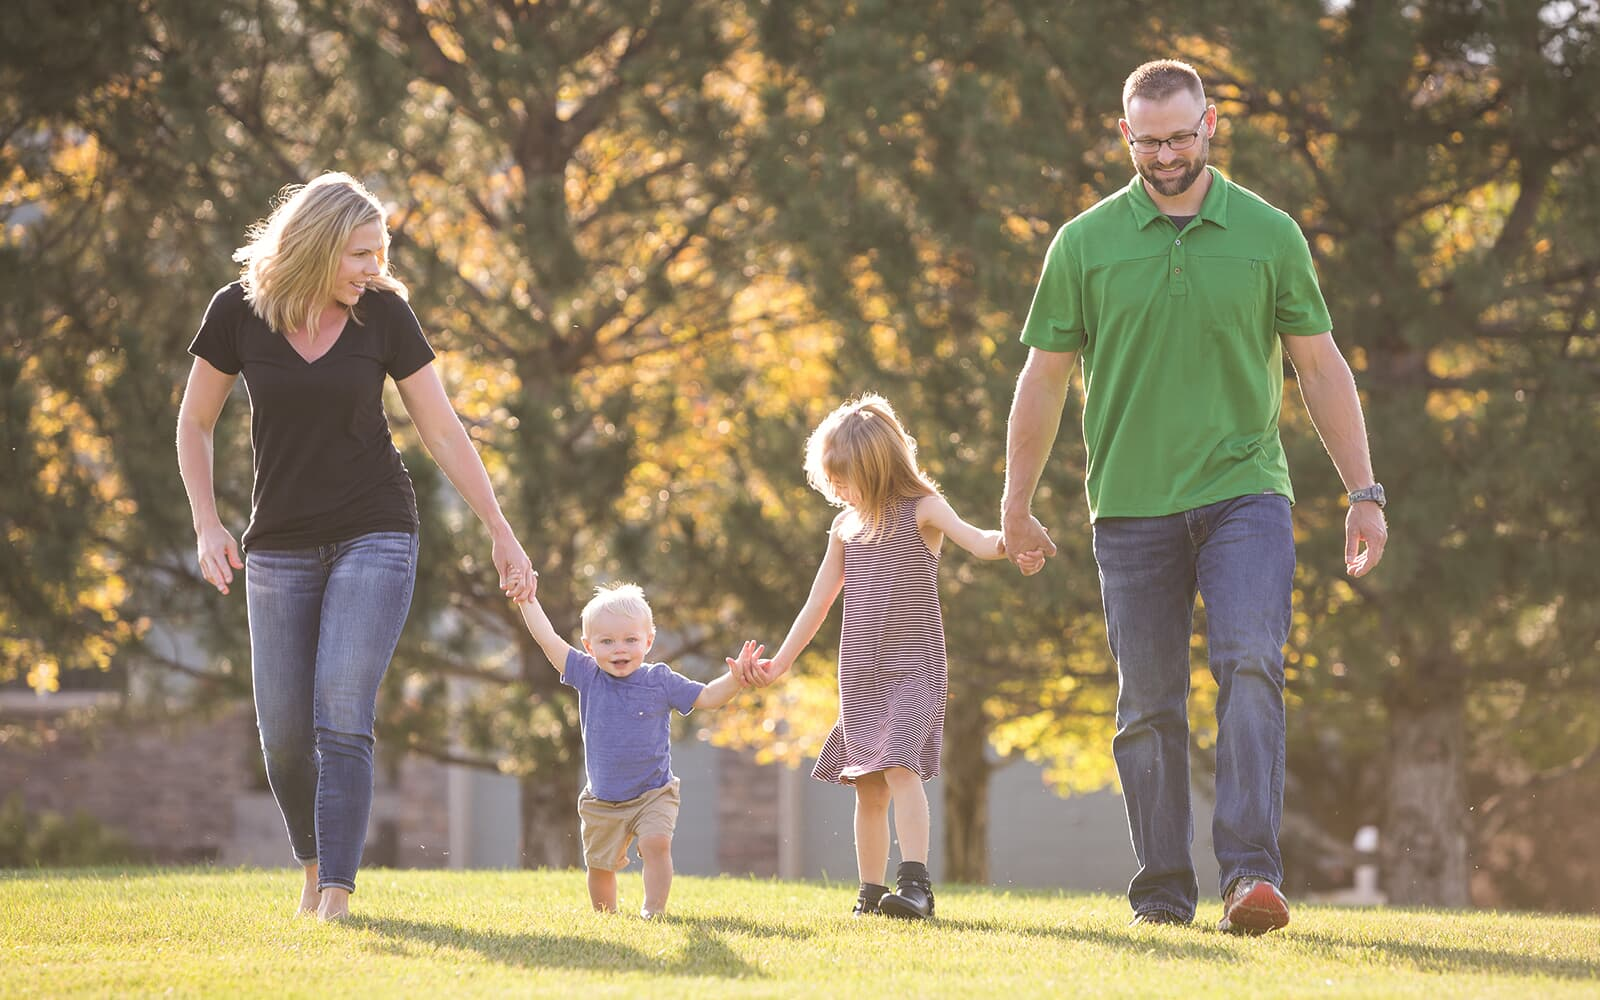 Lifestyle-Family-Park-Walking-Brighton-Crossings-Denver-Colorado